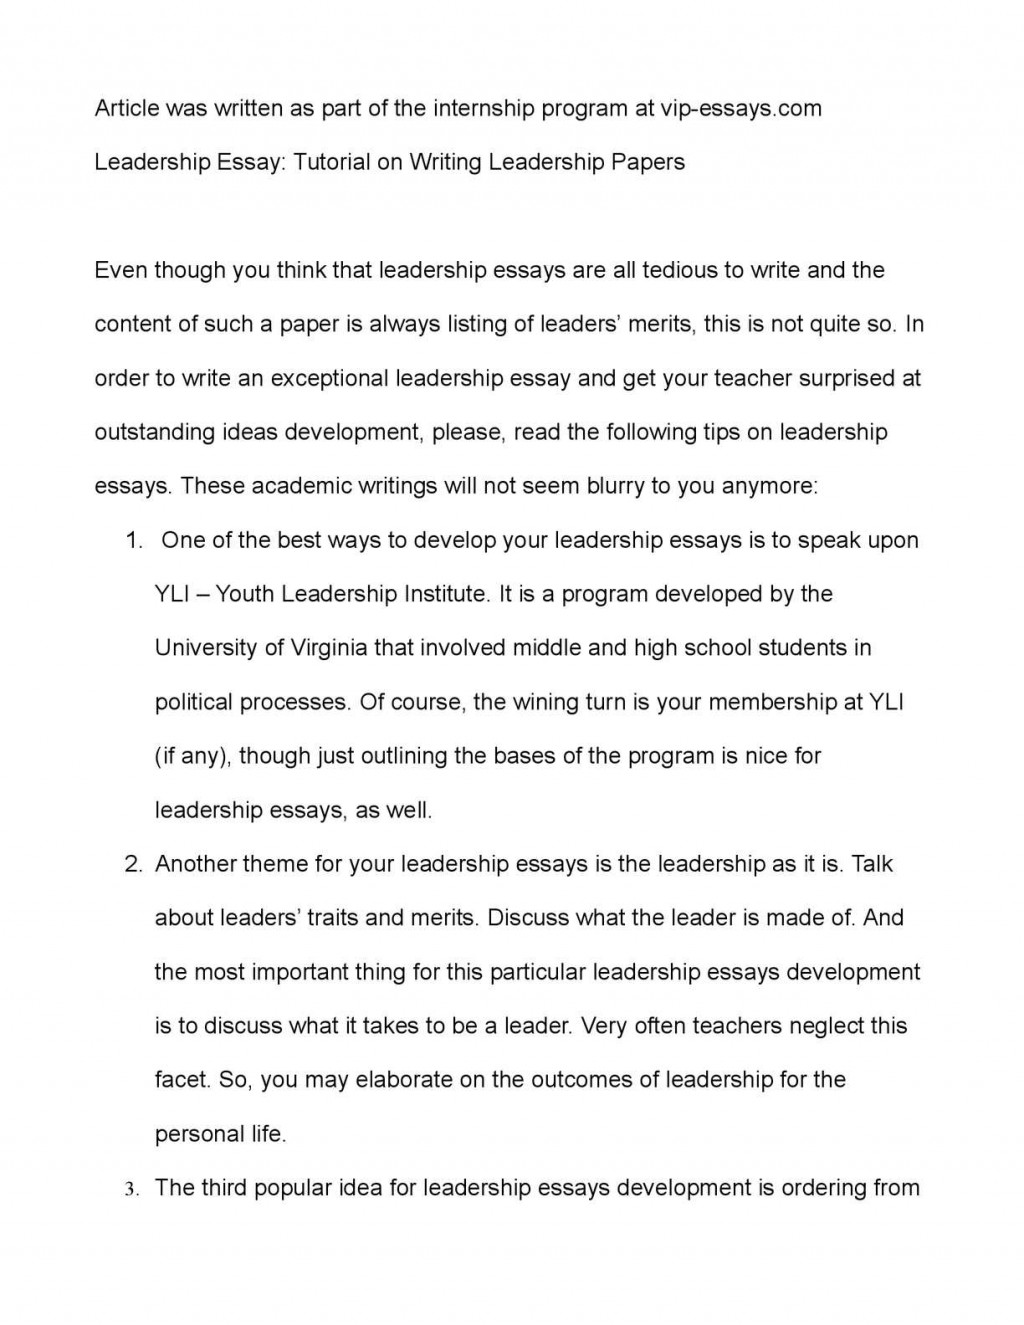 005 Leadership Essays P1 Essay Striking Chevening Samples Uc Examples Large